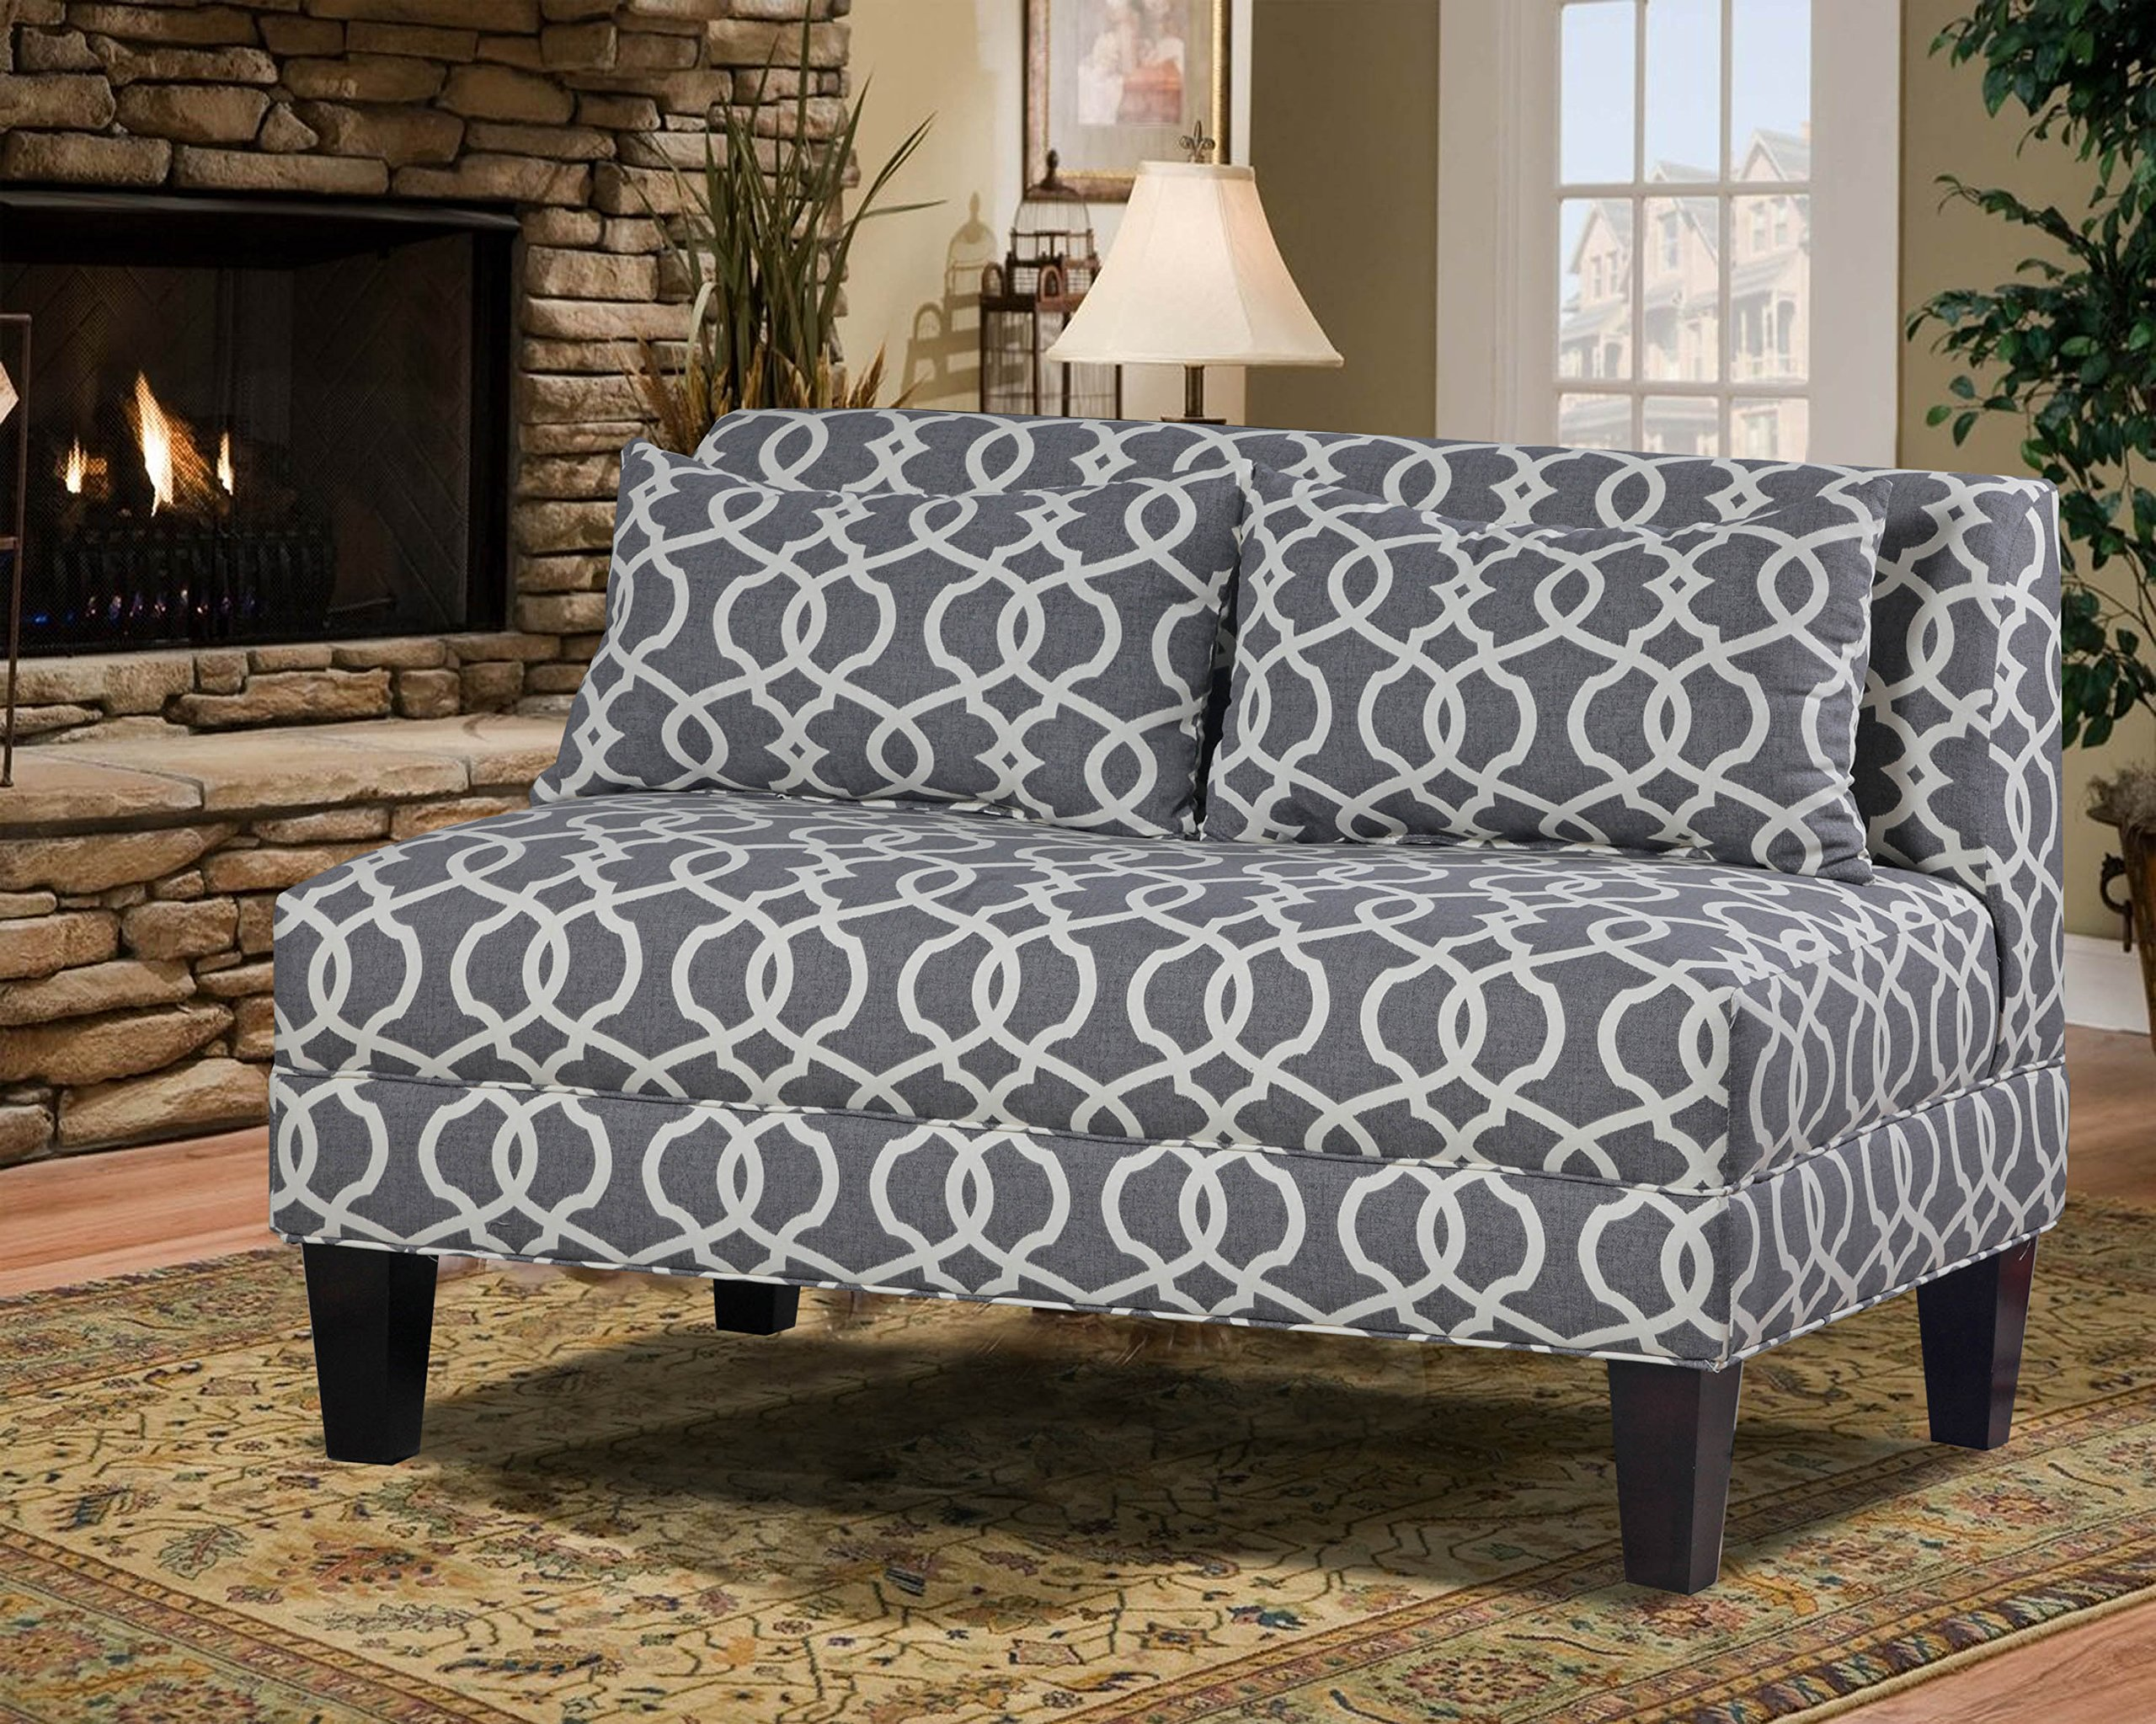 Carolina Accents Briley Armless Loveseat, Emery Pewter